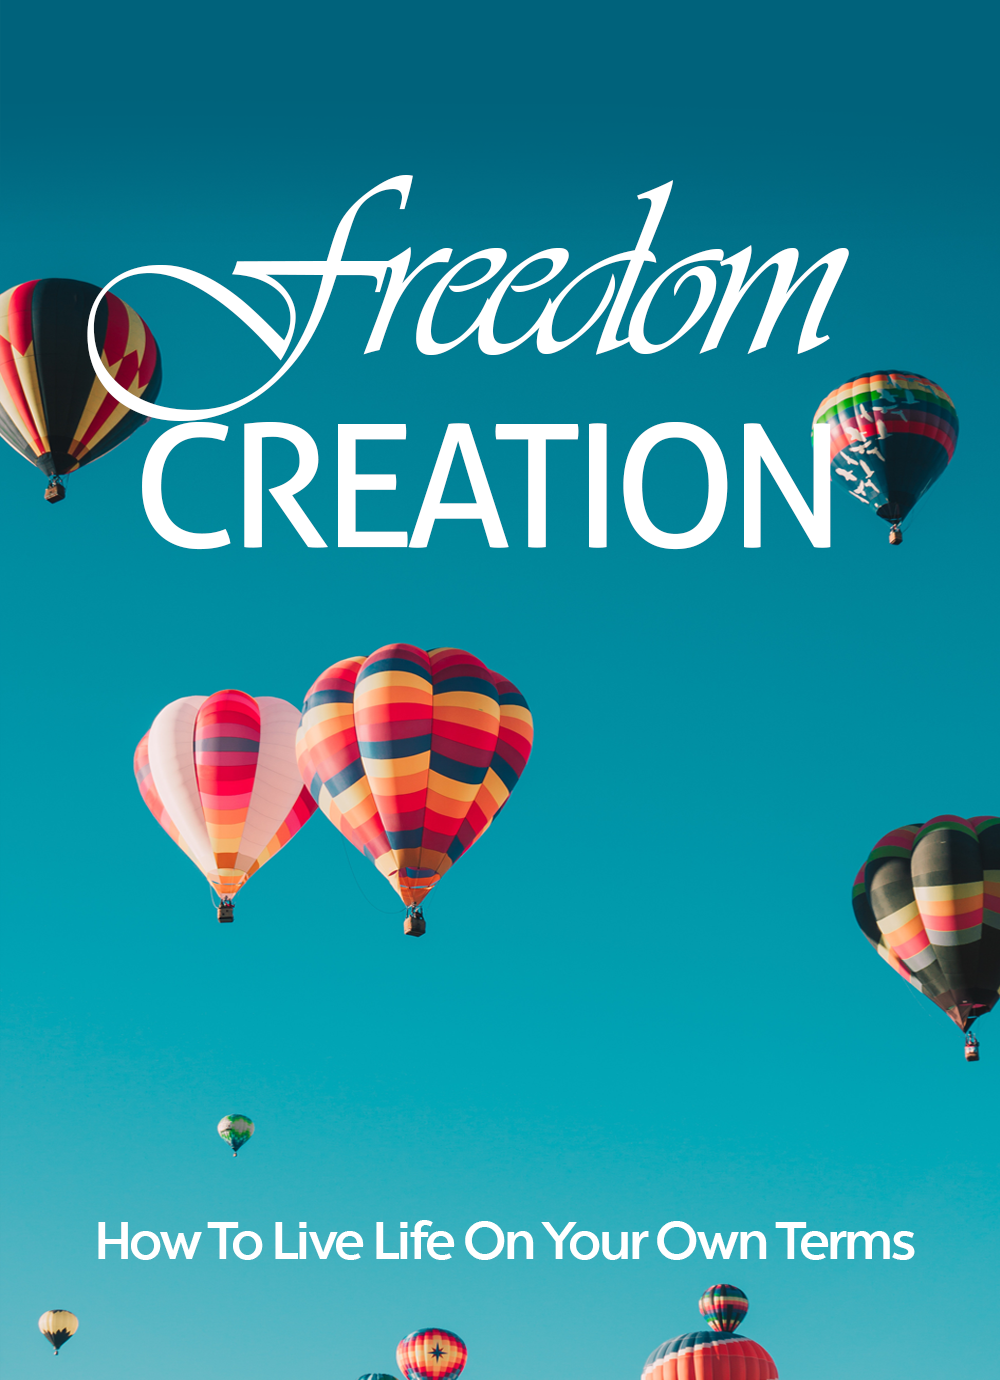 Freedom Creation (How To Live Life On Your Own Terms) Ebook's Ebook Image